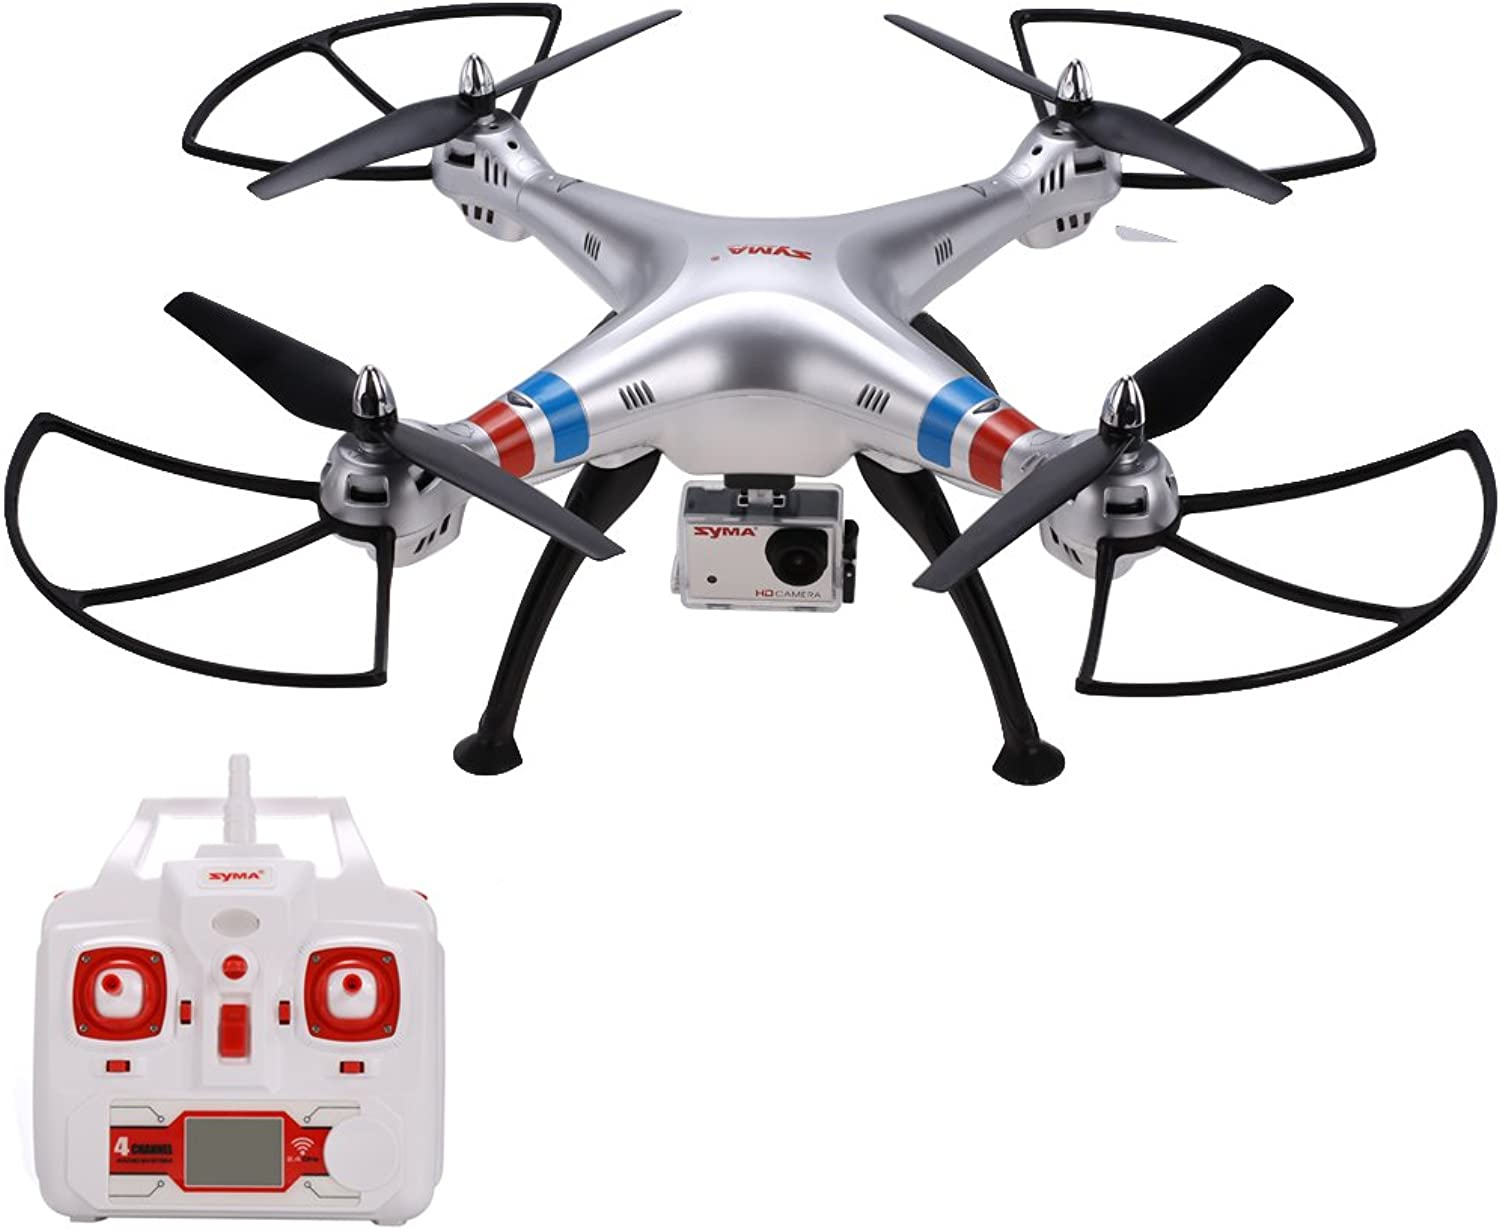 orden en línea Arshiner Syma X8G X8G X8G RC Quadcopter 2.4G 4CH 6-Axis 8MP Wirojo HD caméra Headless Mode avec Batterie de 7.4V 2000MAH  almacén al por mayor